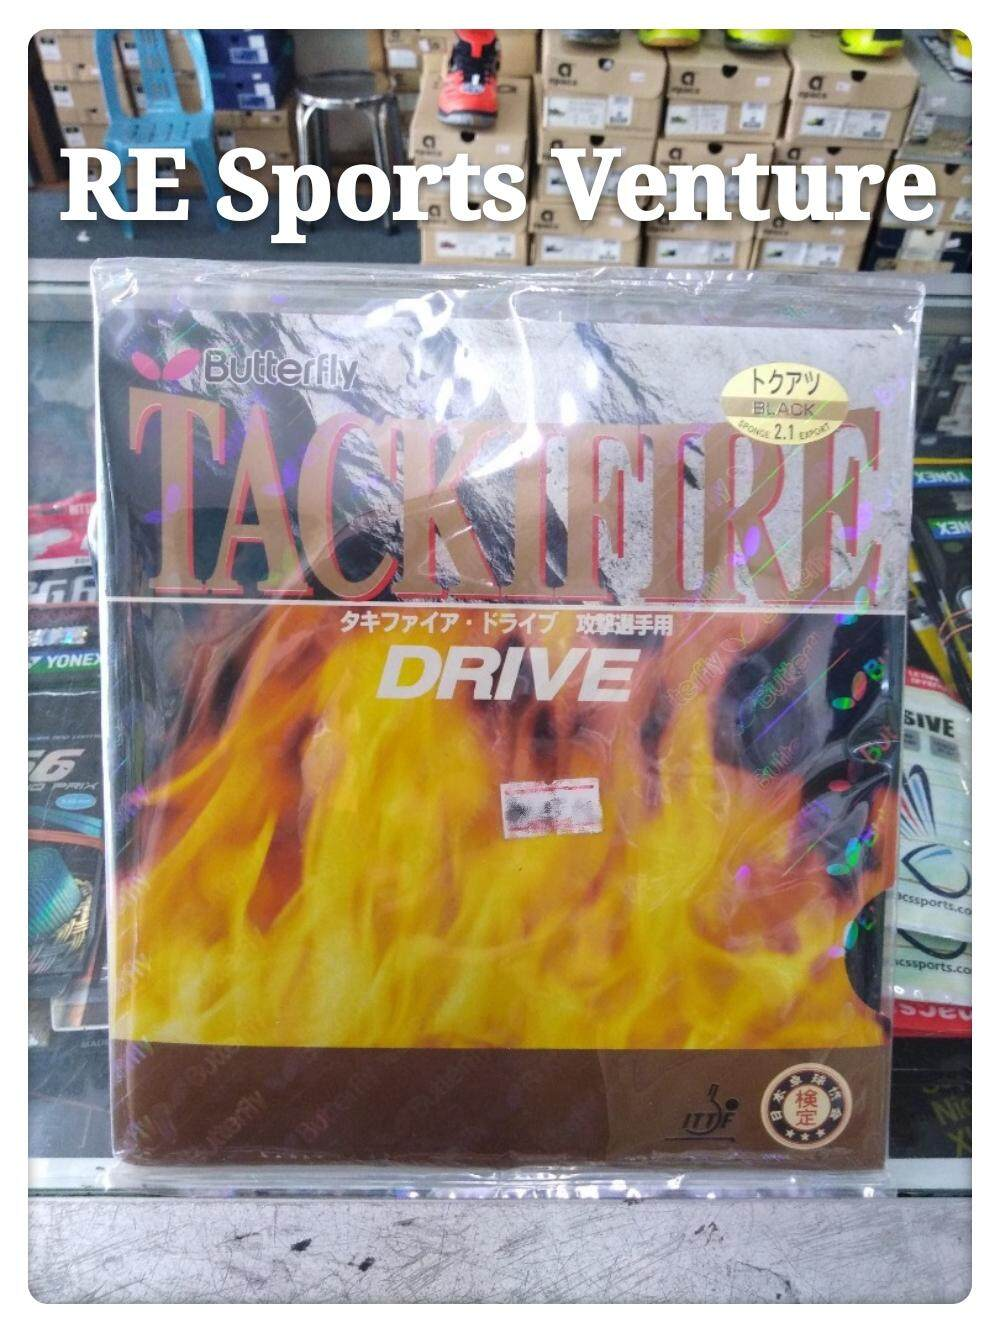 Butterfly TackiFire - Drive Table Tennis Rubber